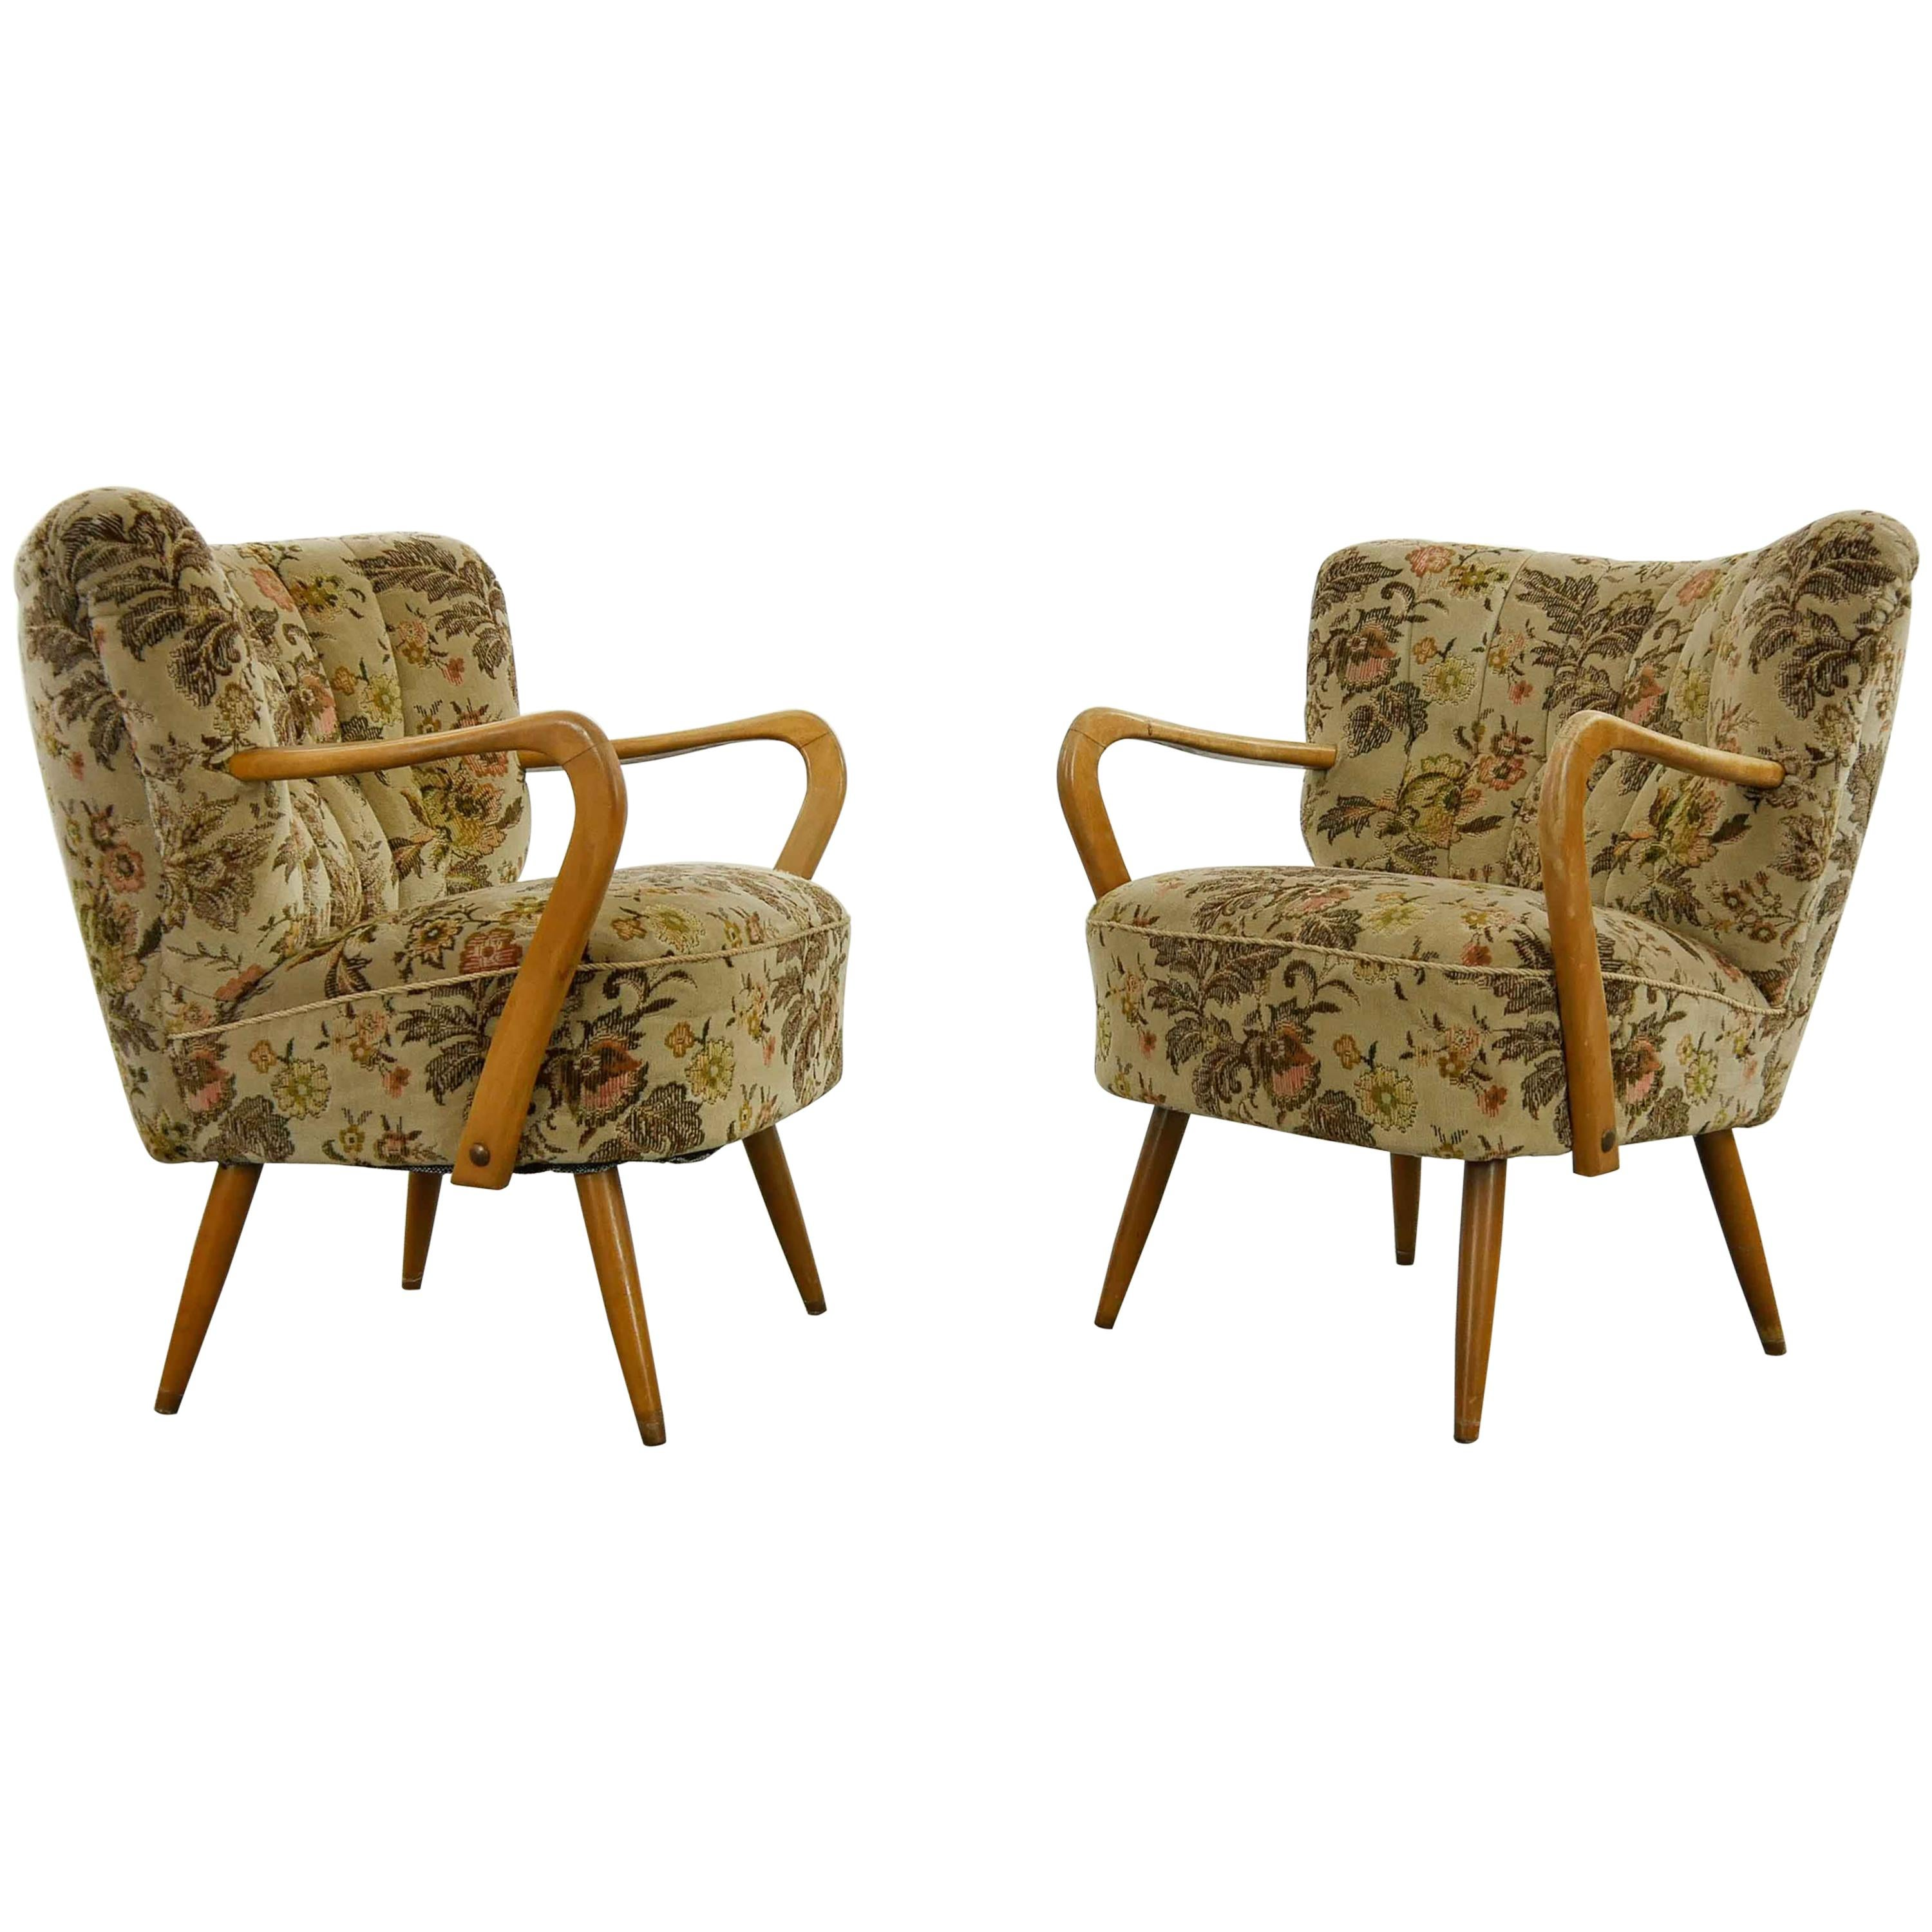 Midcentury Pair of Cocktail Club Chairs with Armrests, 1950s